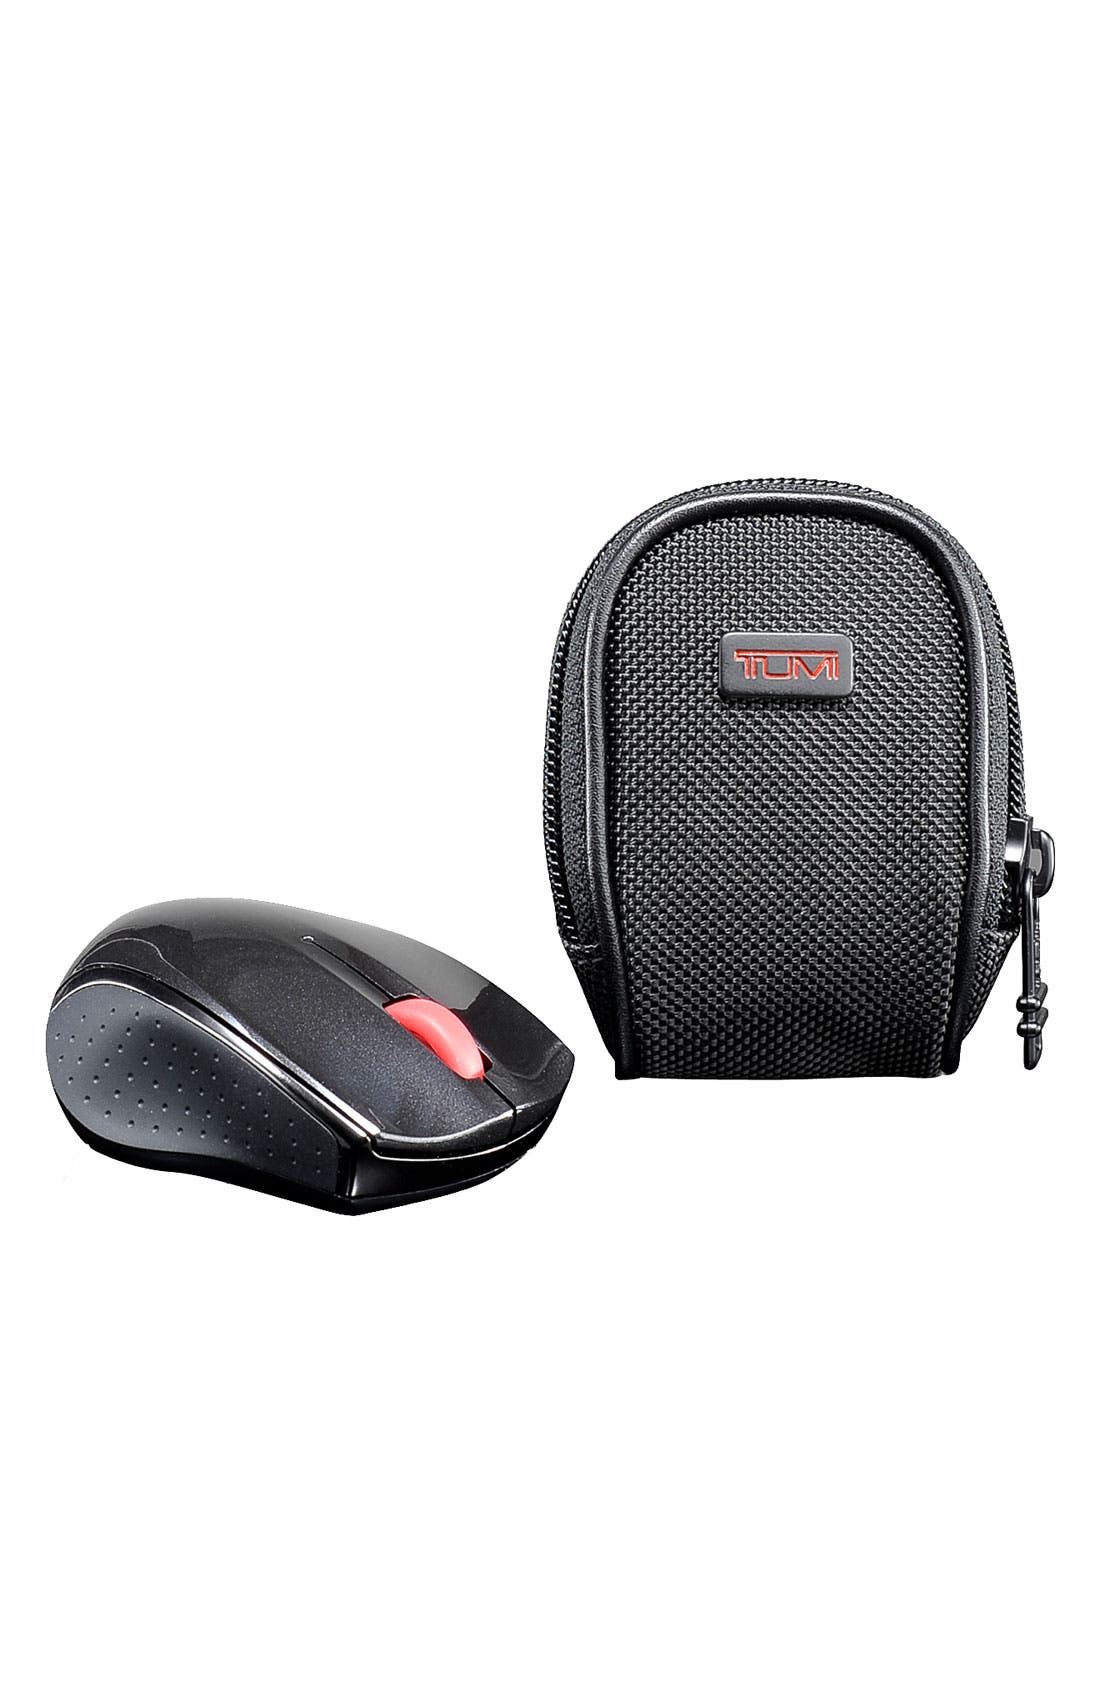 Alternate Image 1 Selected - Tumi 'Mini' Wireless Travel Mouse